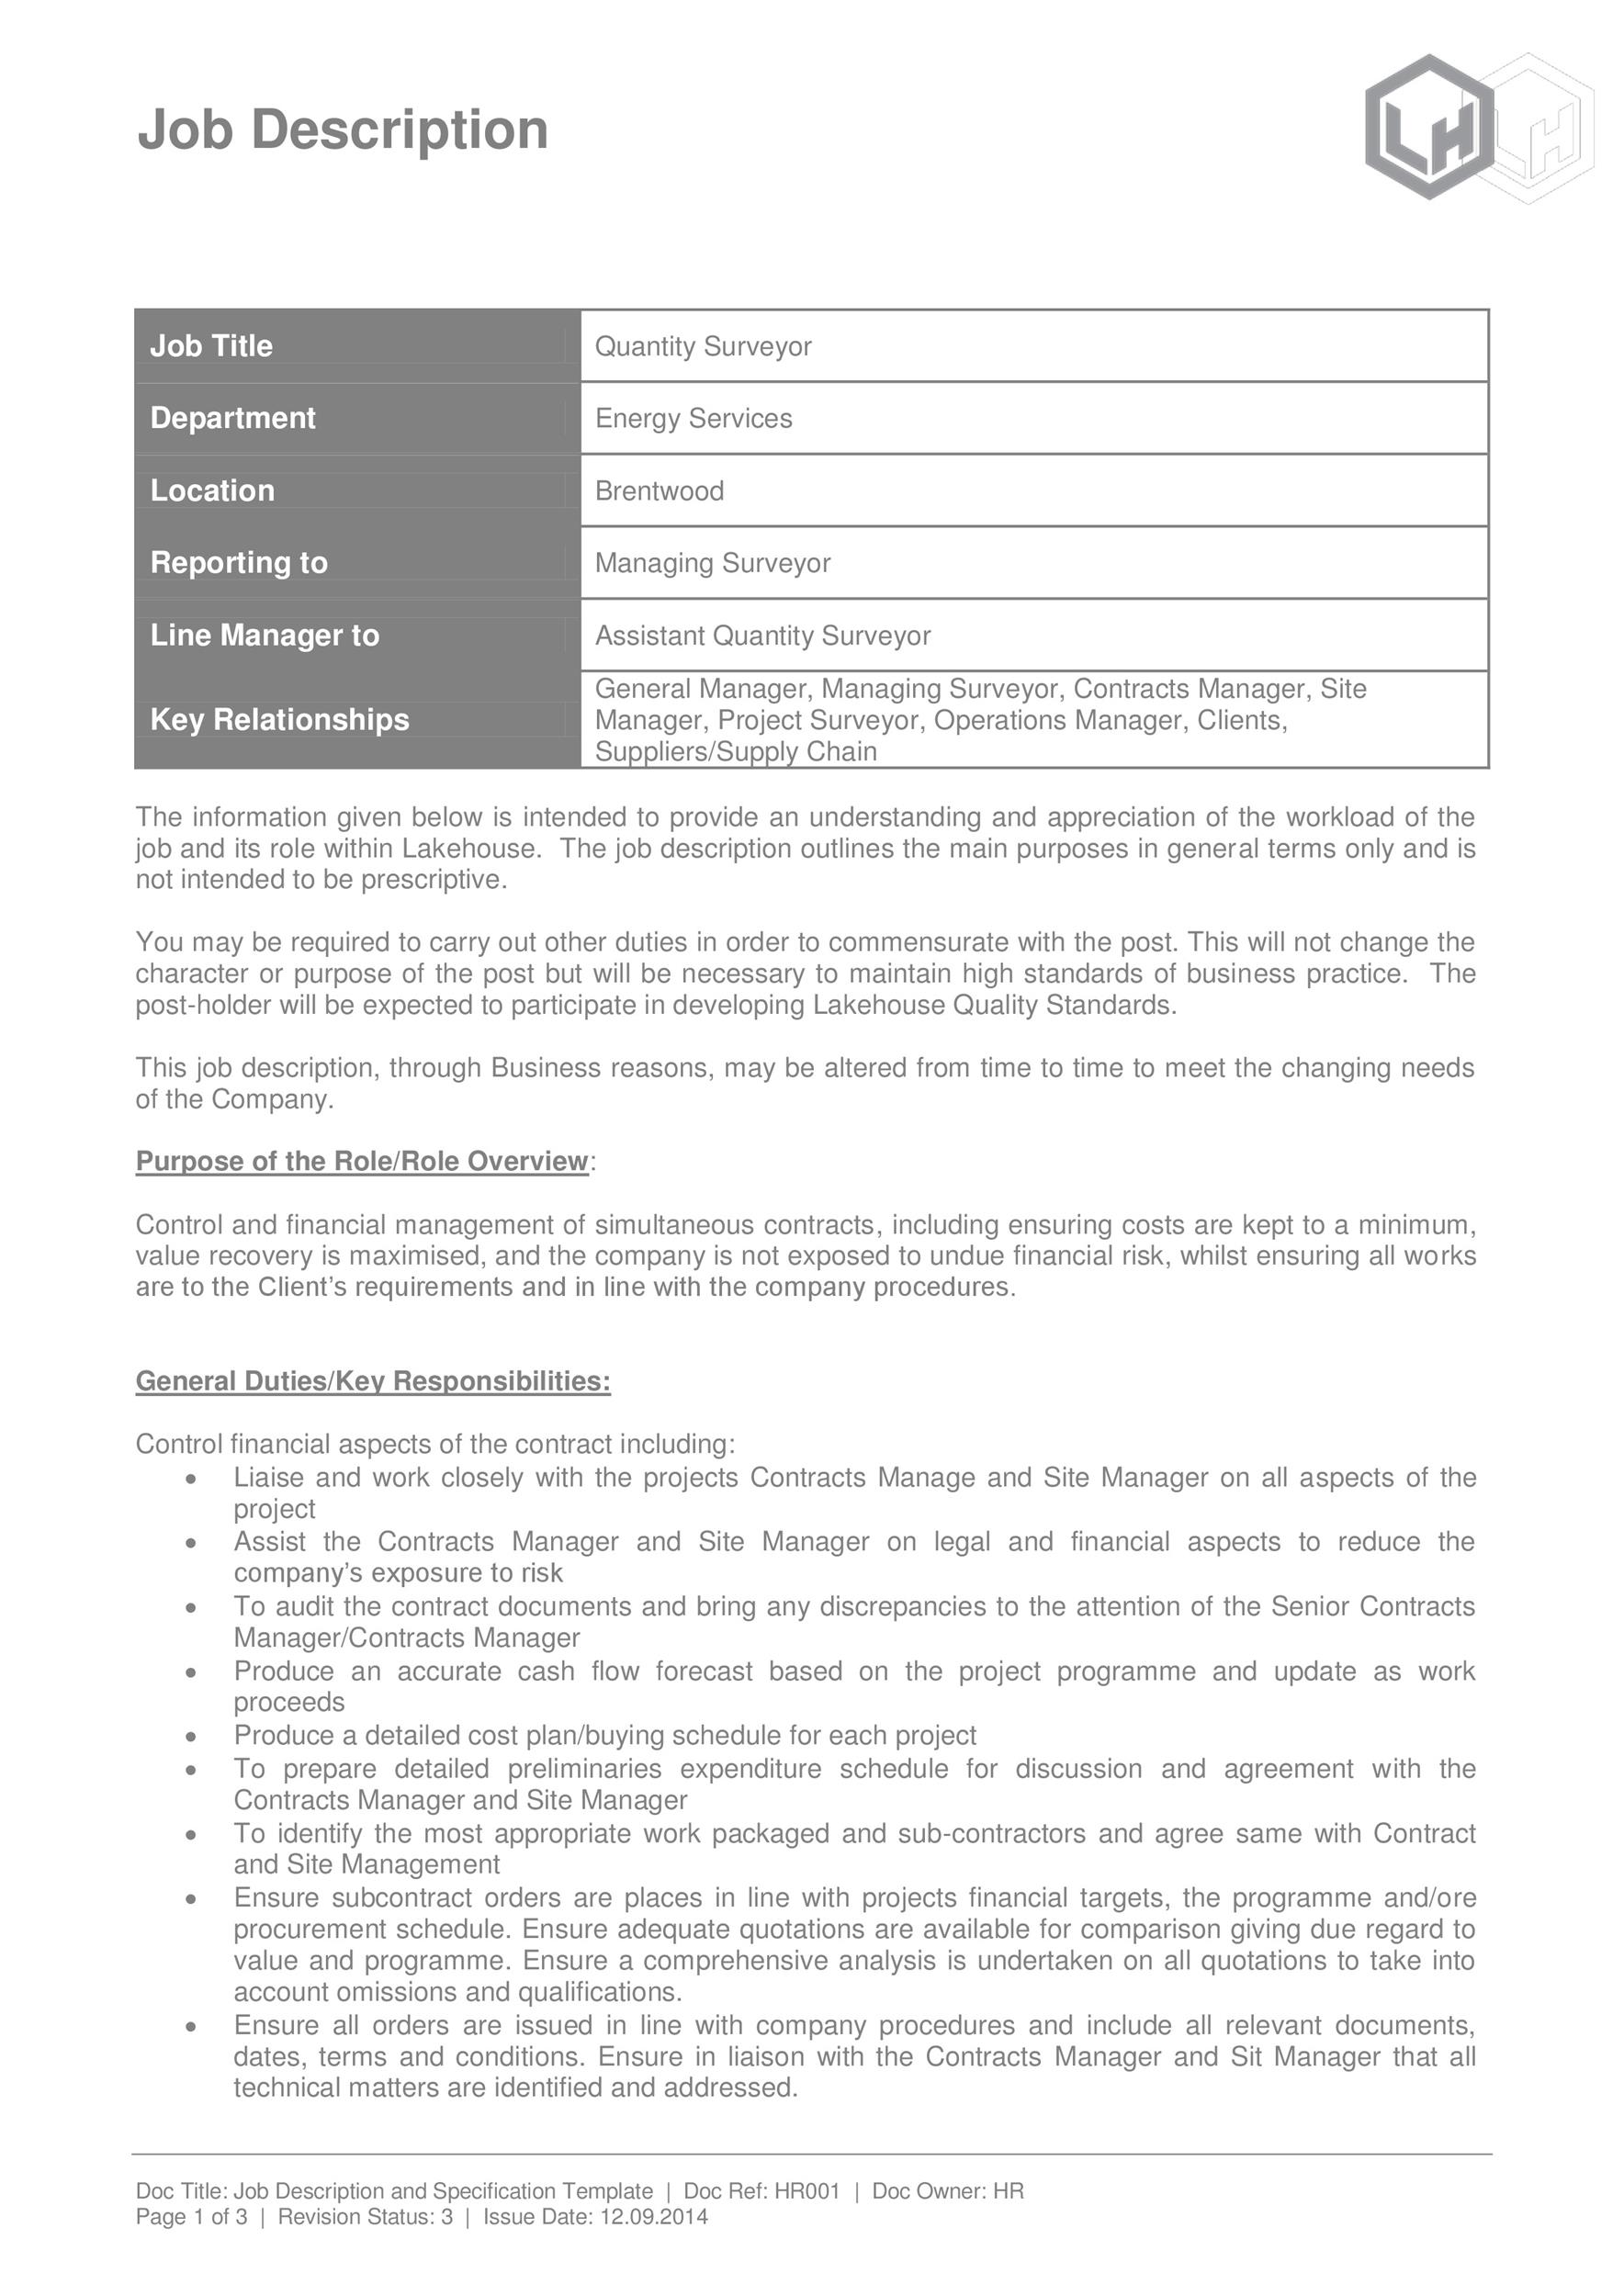 Free Job Description Template 13